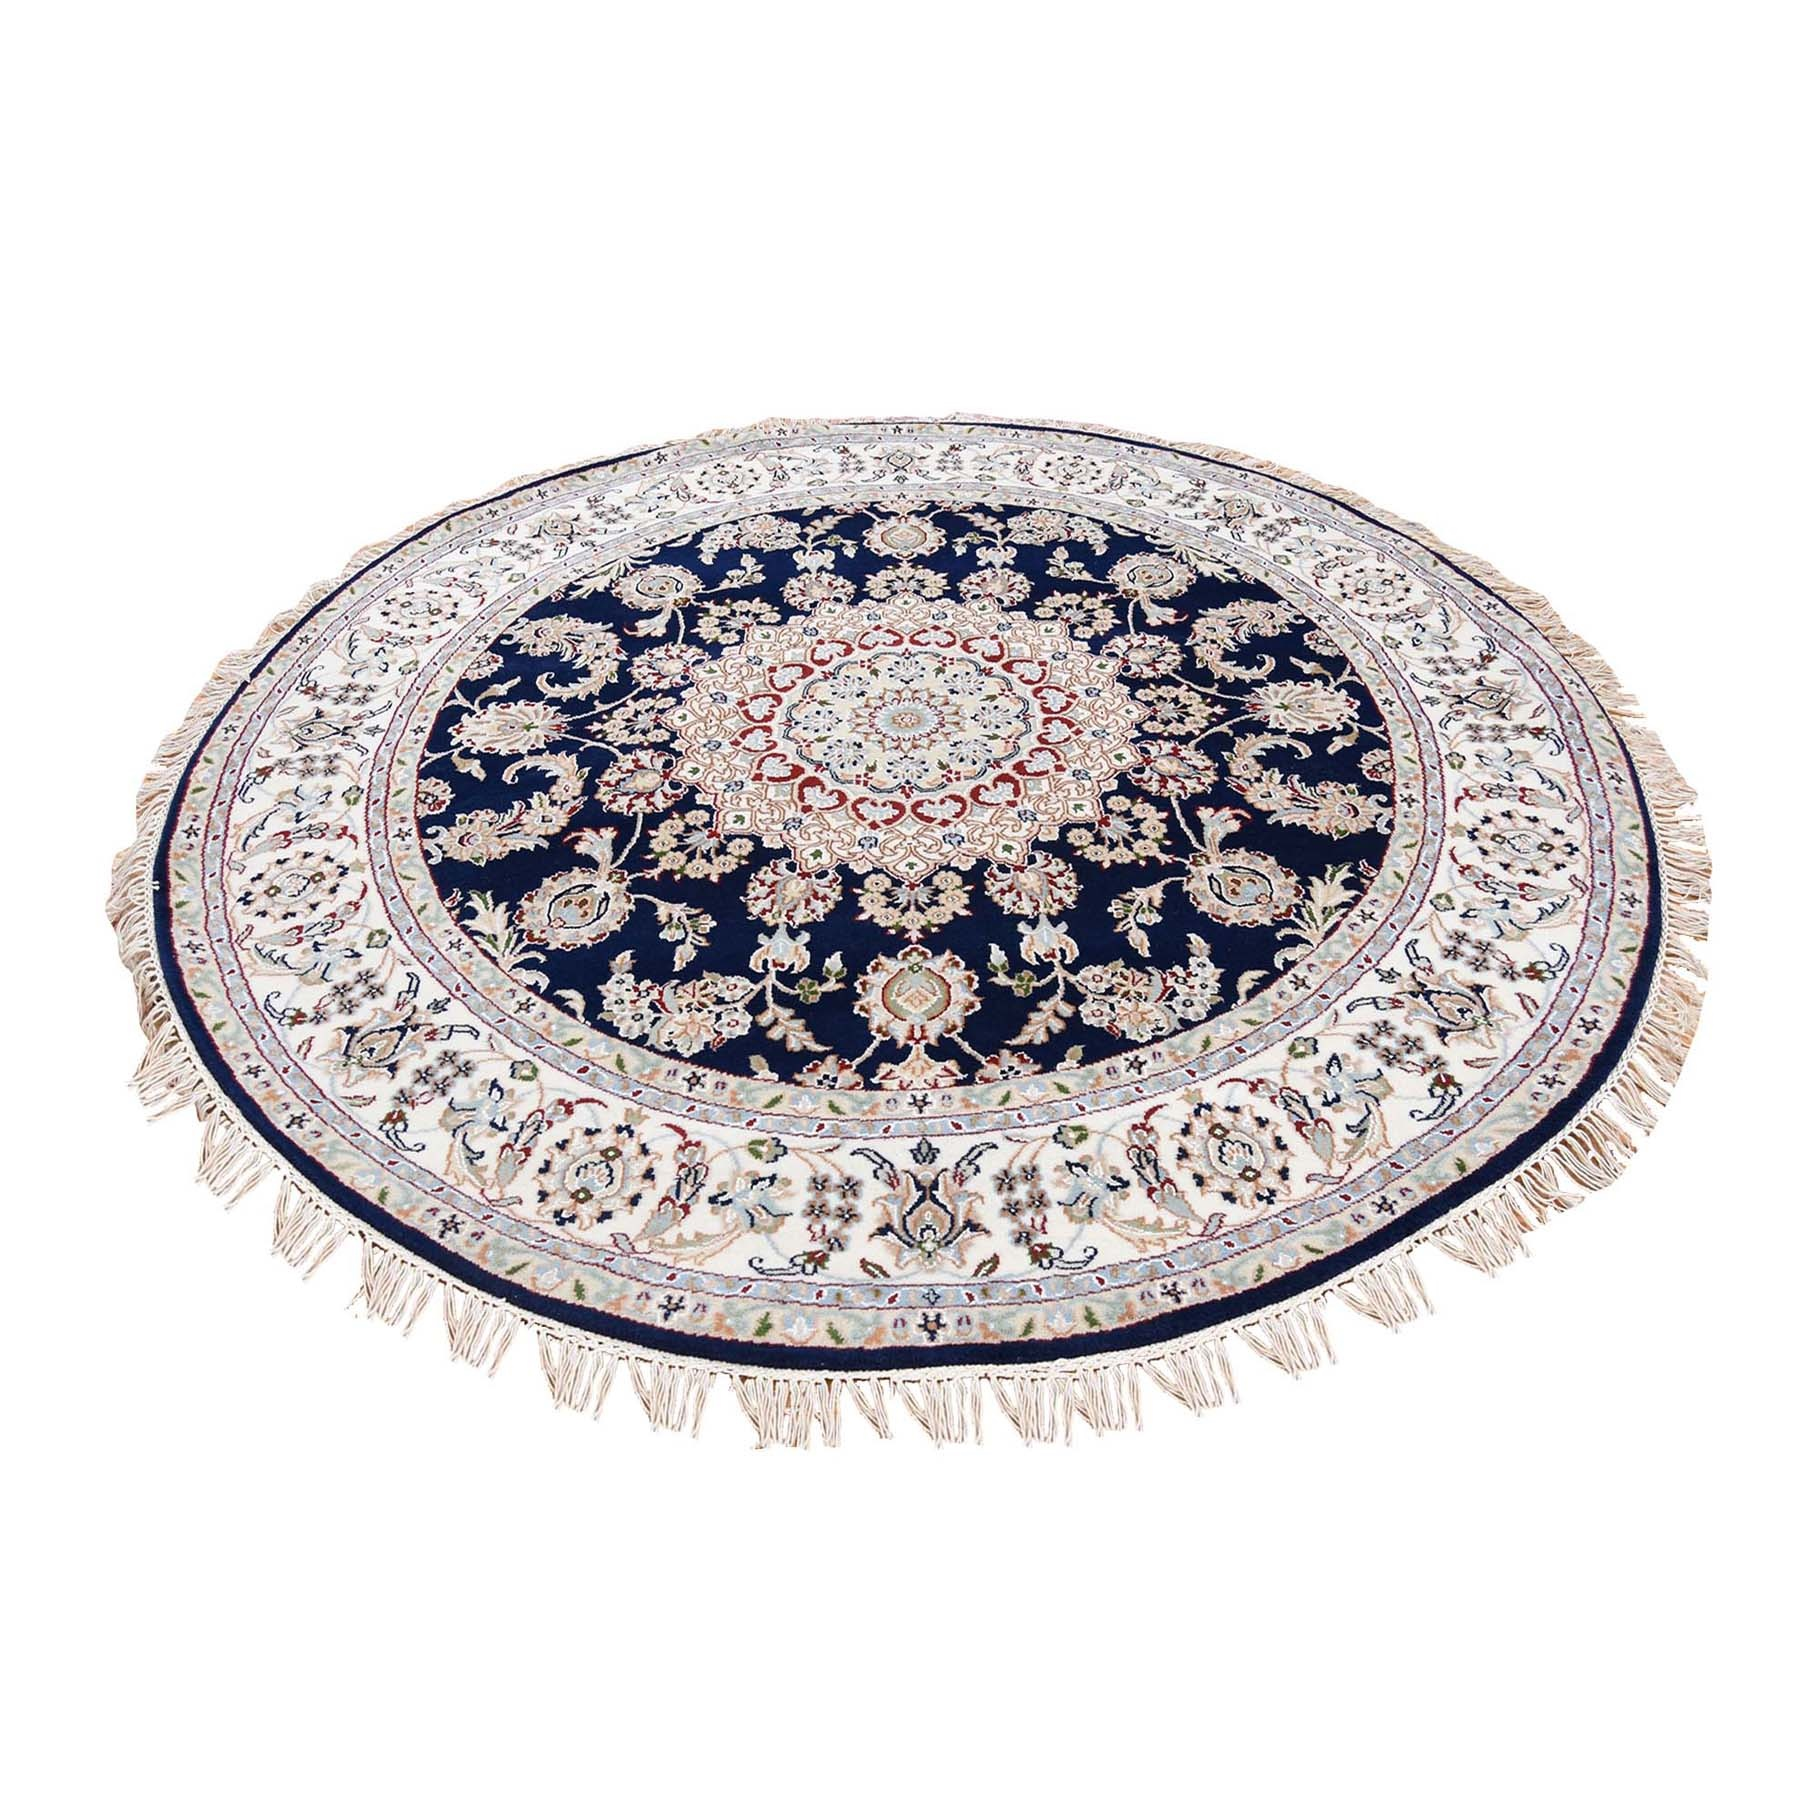 5'1X5'1 Navy Blue Round Nain Wool And Silk 250 Kpsi Hand Knotted Oriental Rug  moad76d9